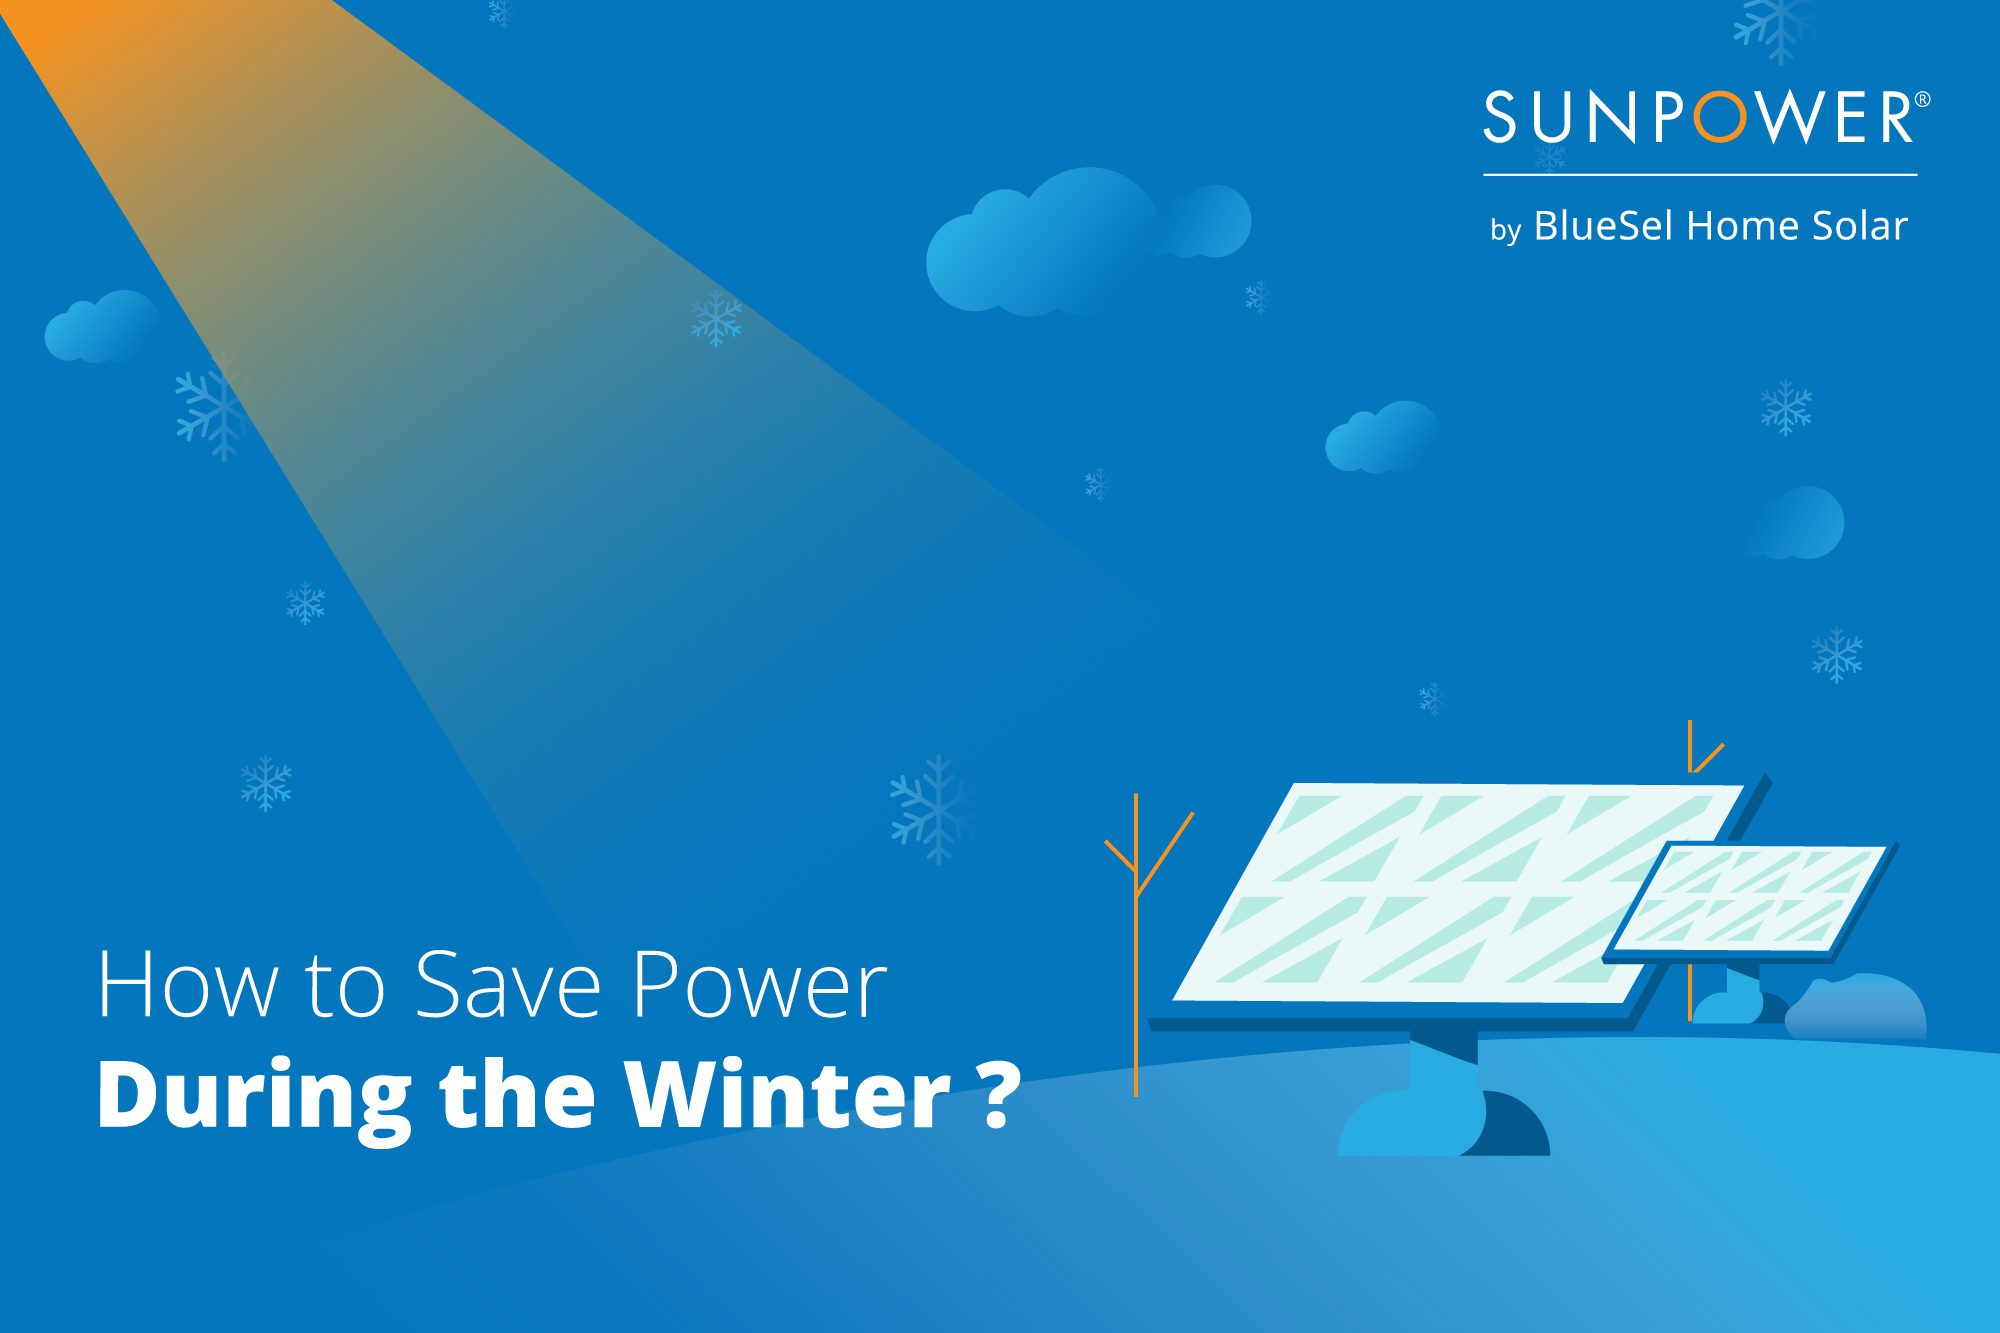 How to save power this winter